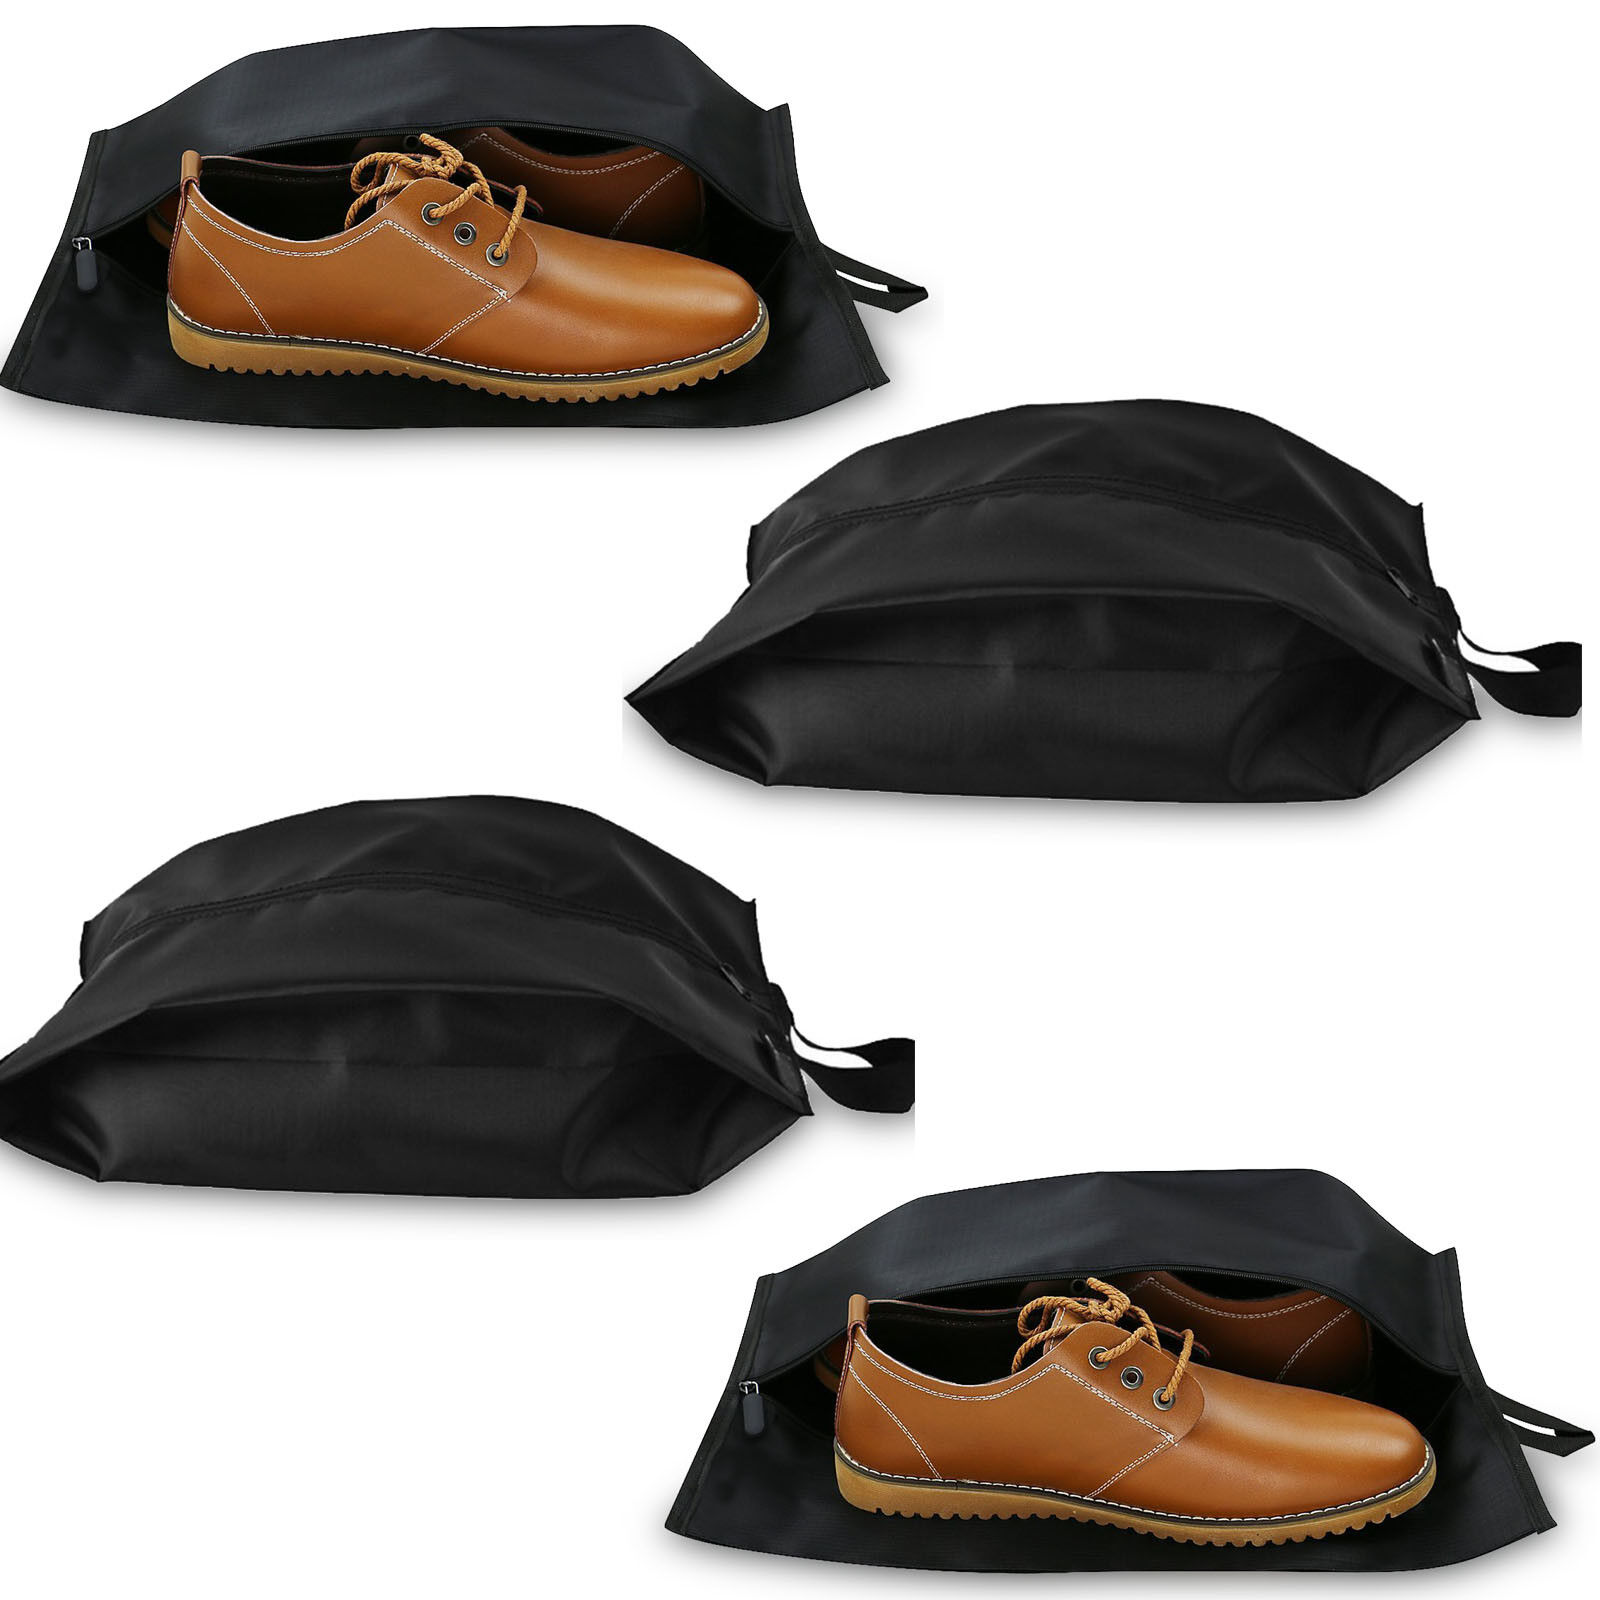 shoe bags travel accessories 2 4 6